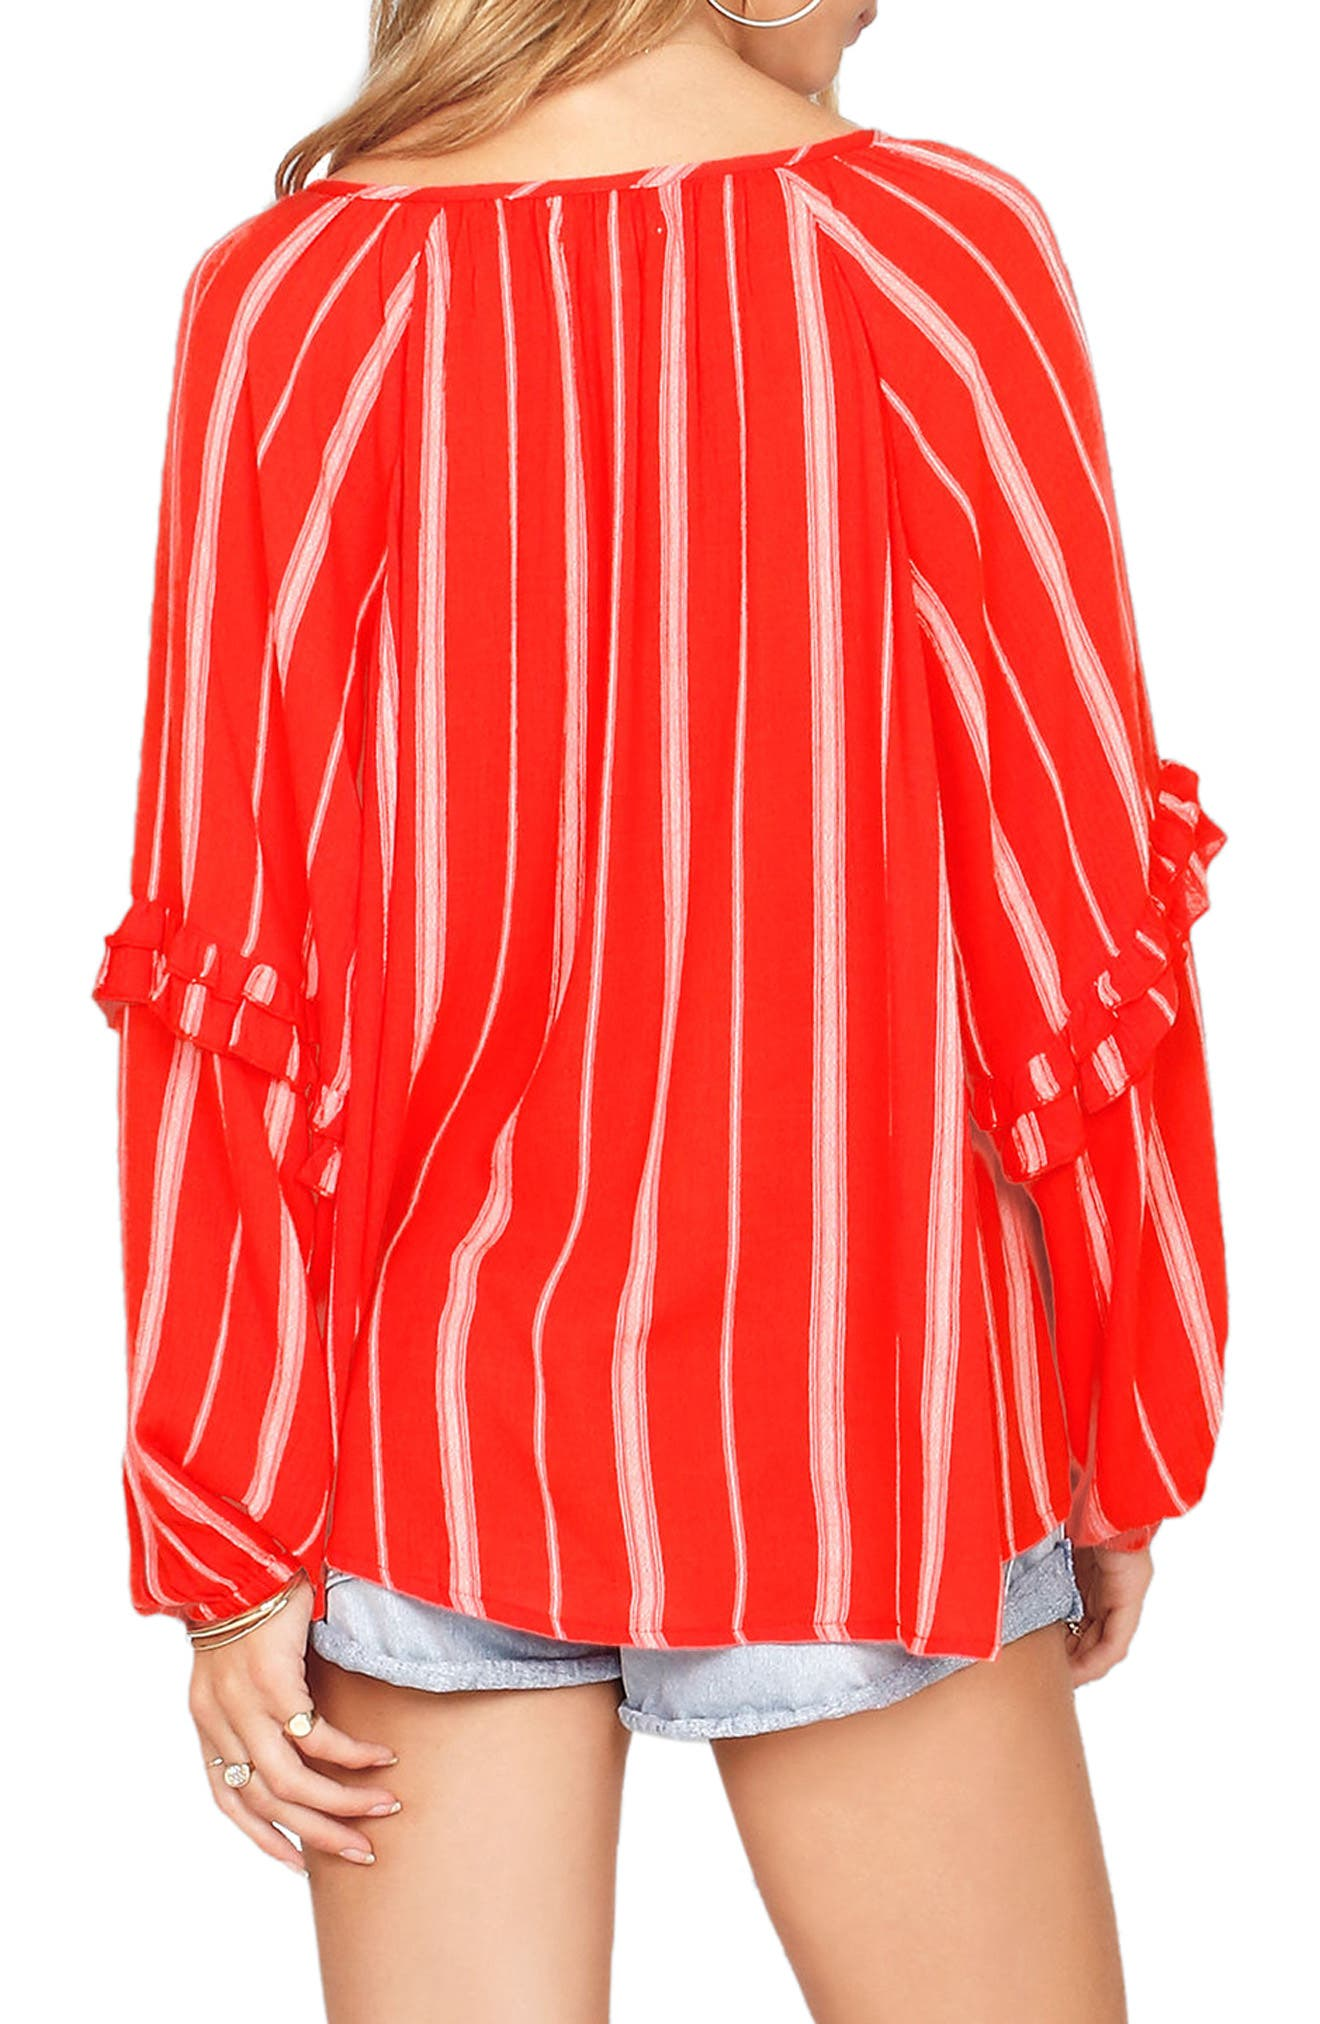 Solare Stripe Top,                             Alternate thumbnail 2, color,                             600